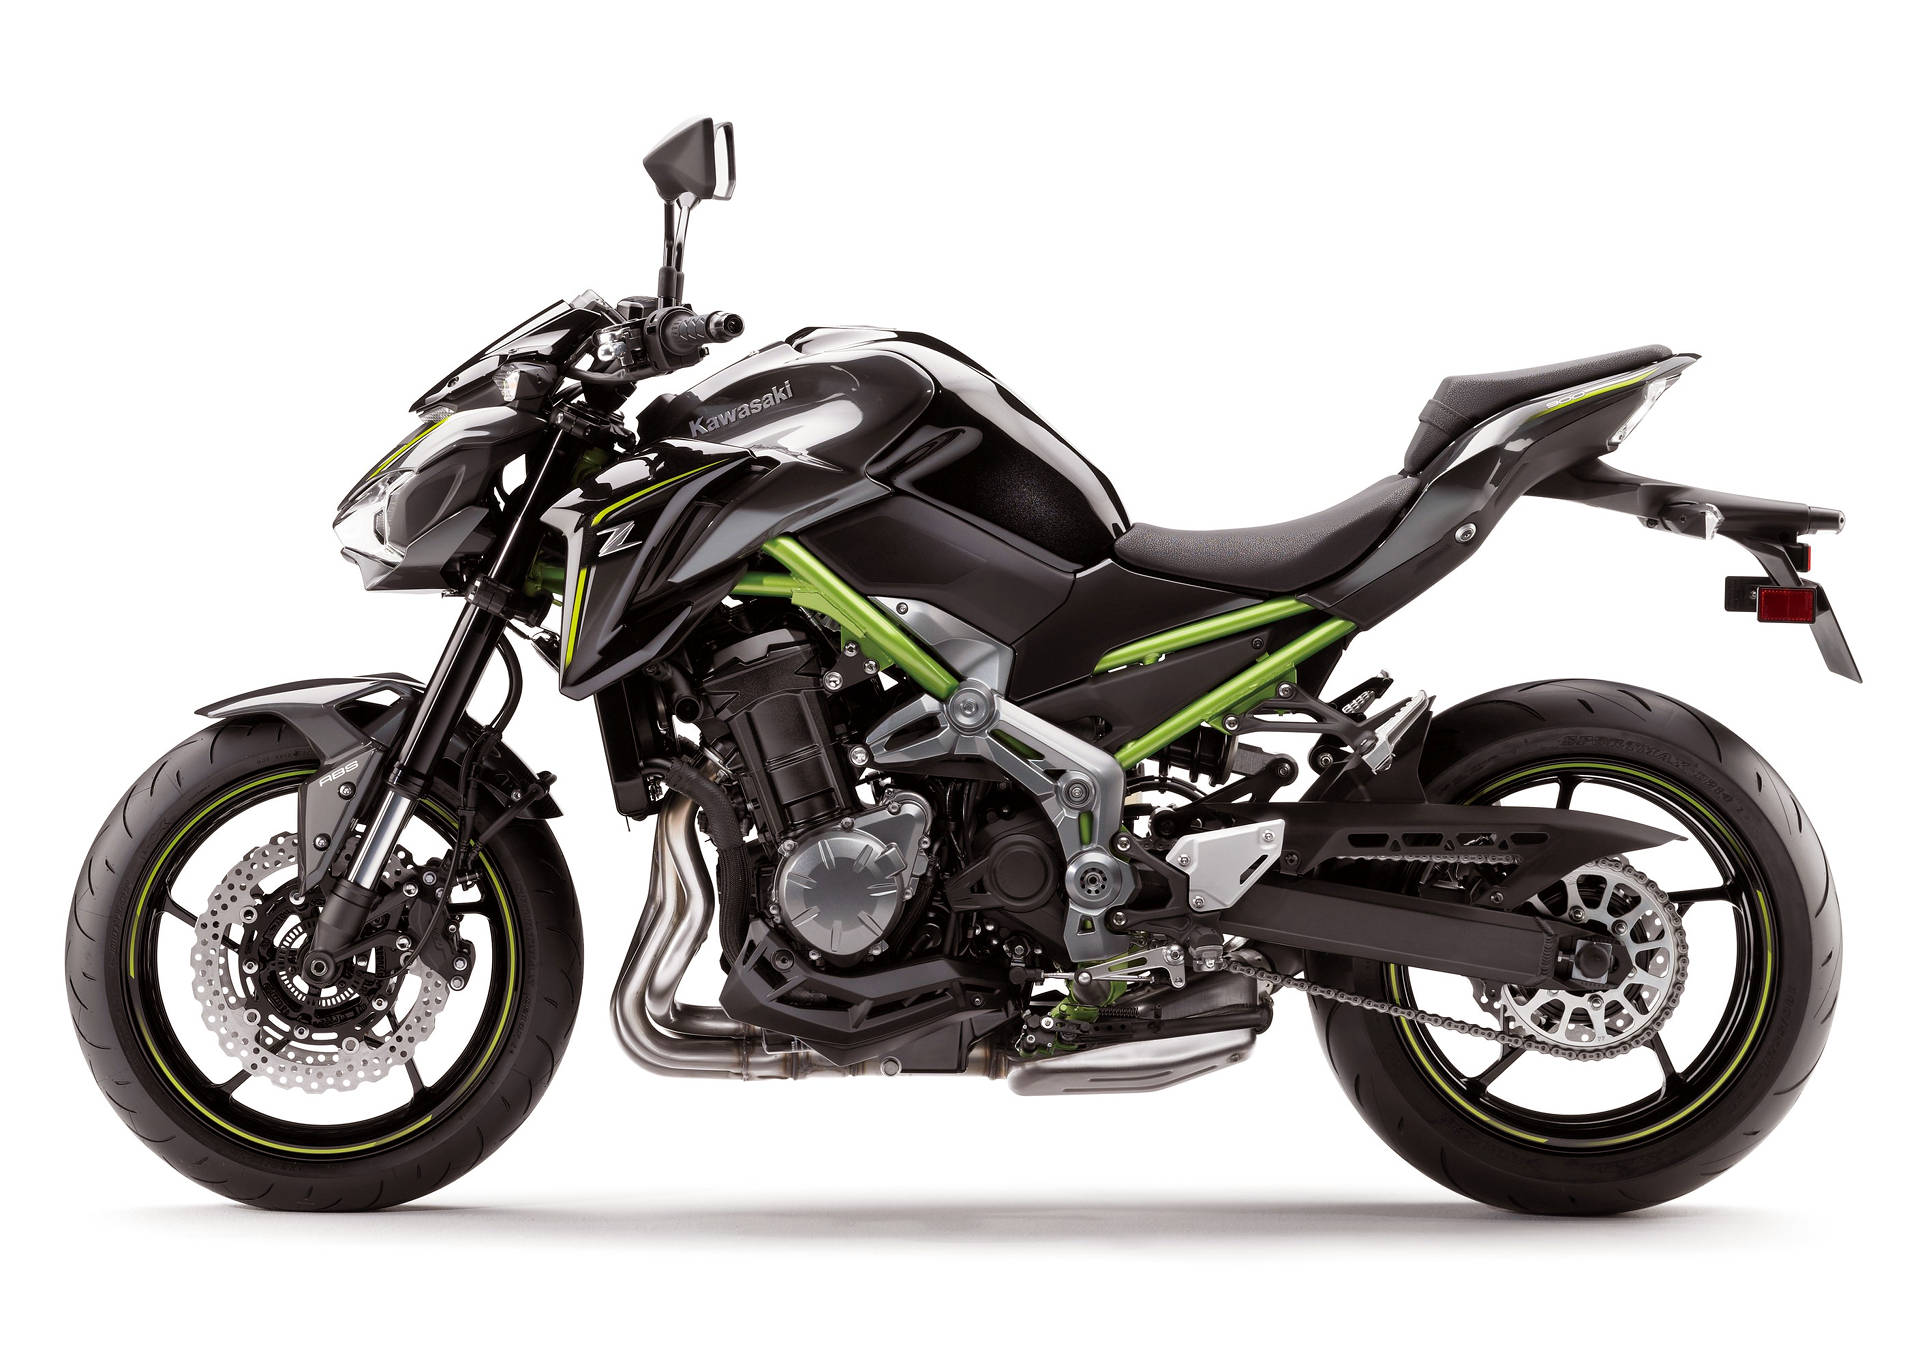 US Market Gets All New 2017 Kawasaki Z900 ABS MotorcycleDaily